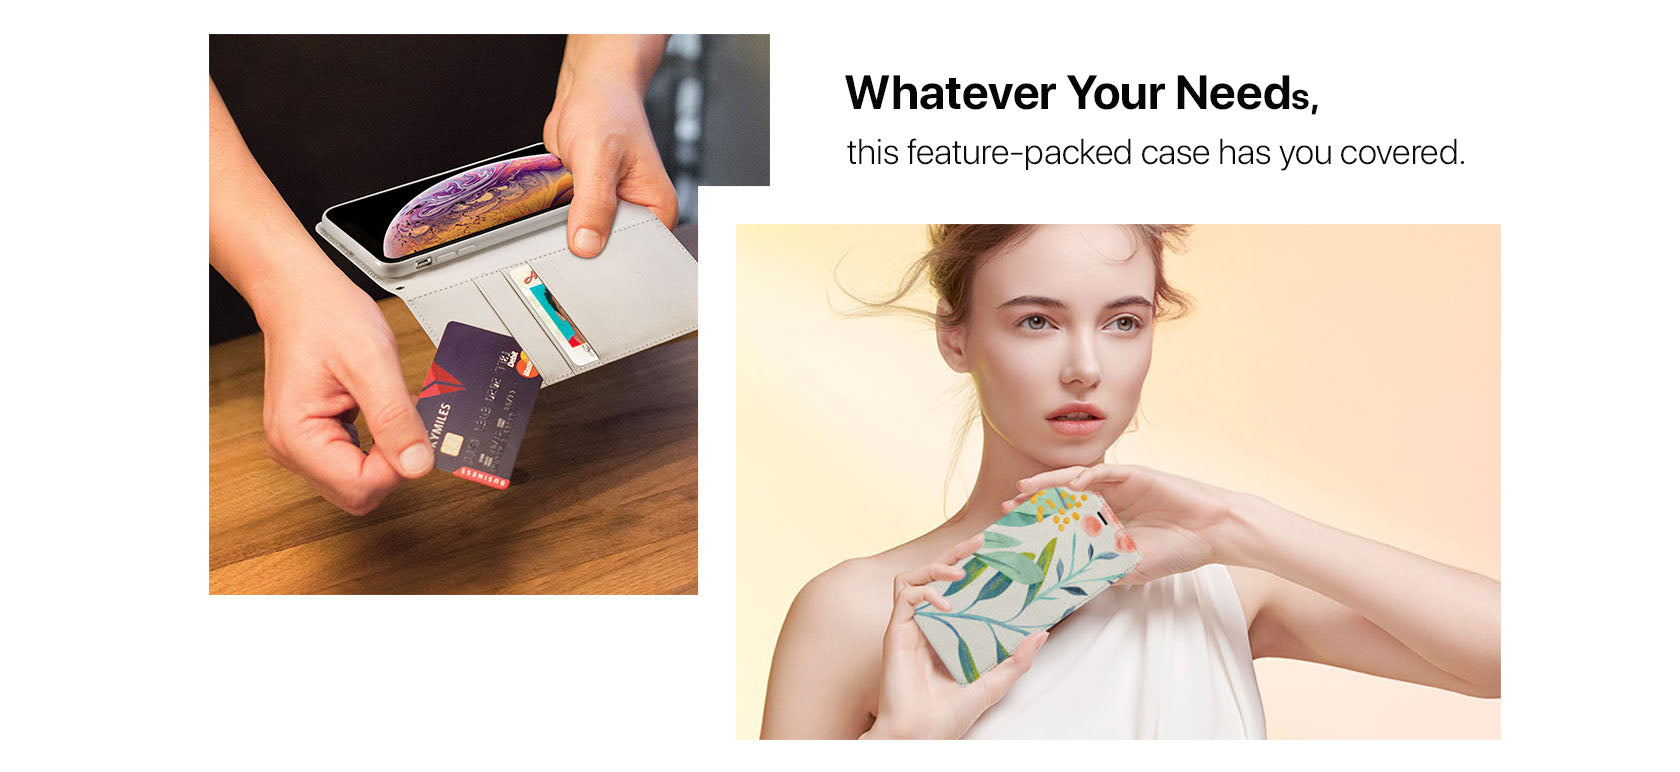 Whatever Your Needs,this feature-packed case has you covered.